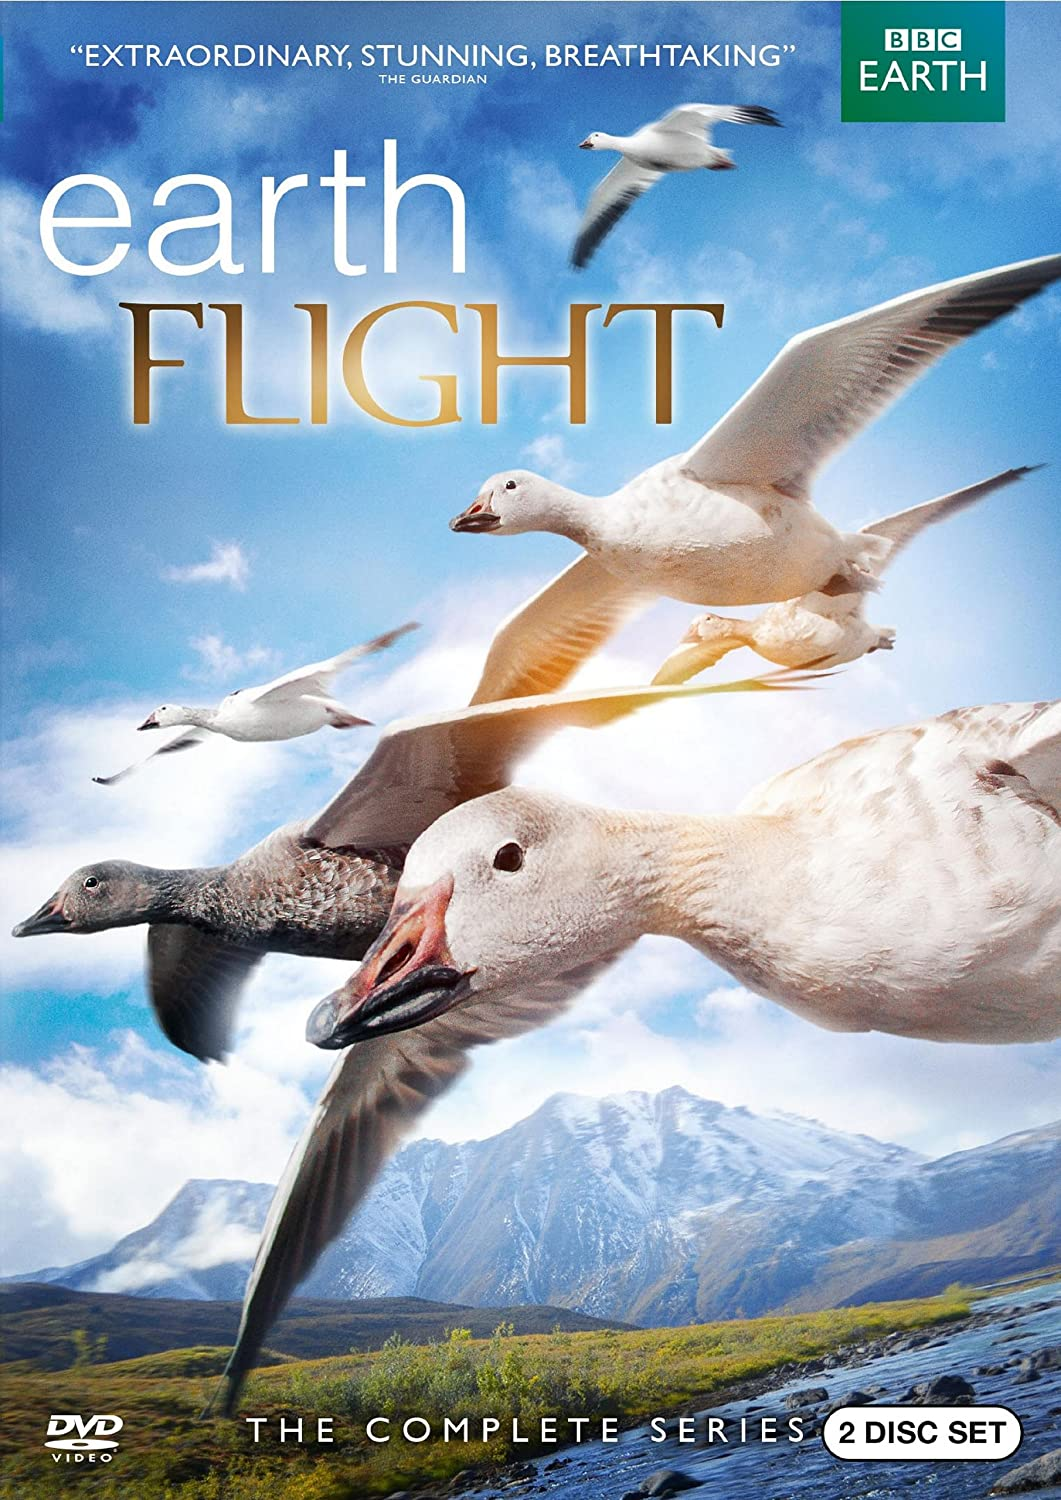 Amazon.com: Earthflight: The Complete Series: David Tennant, Various: Movies & TV